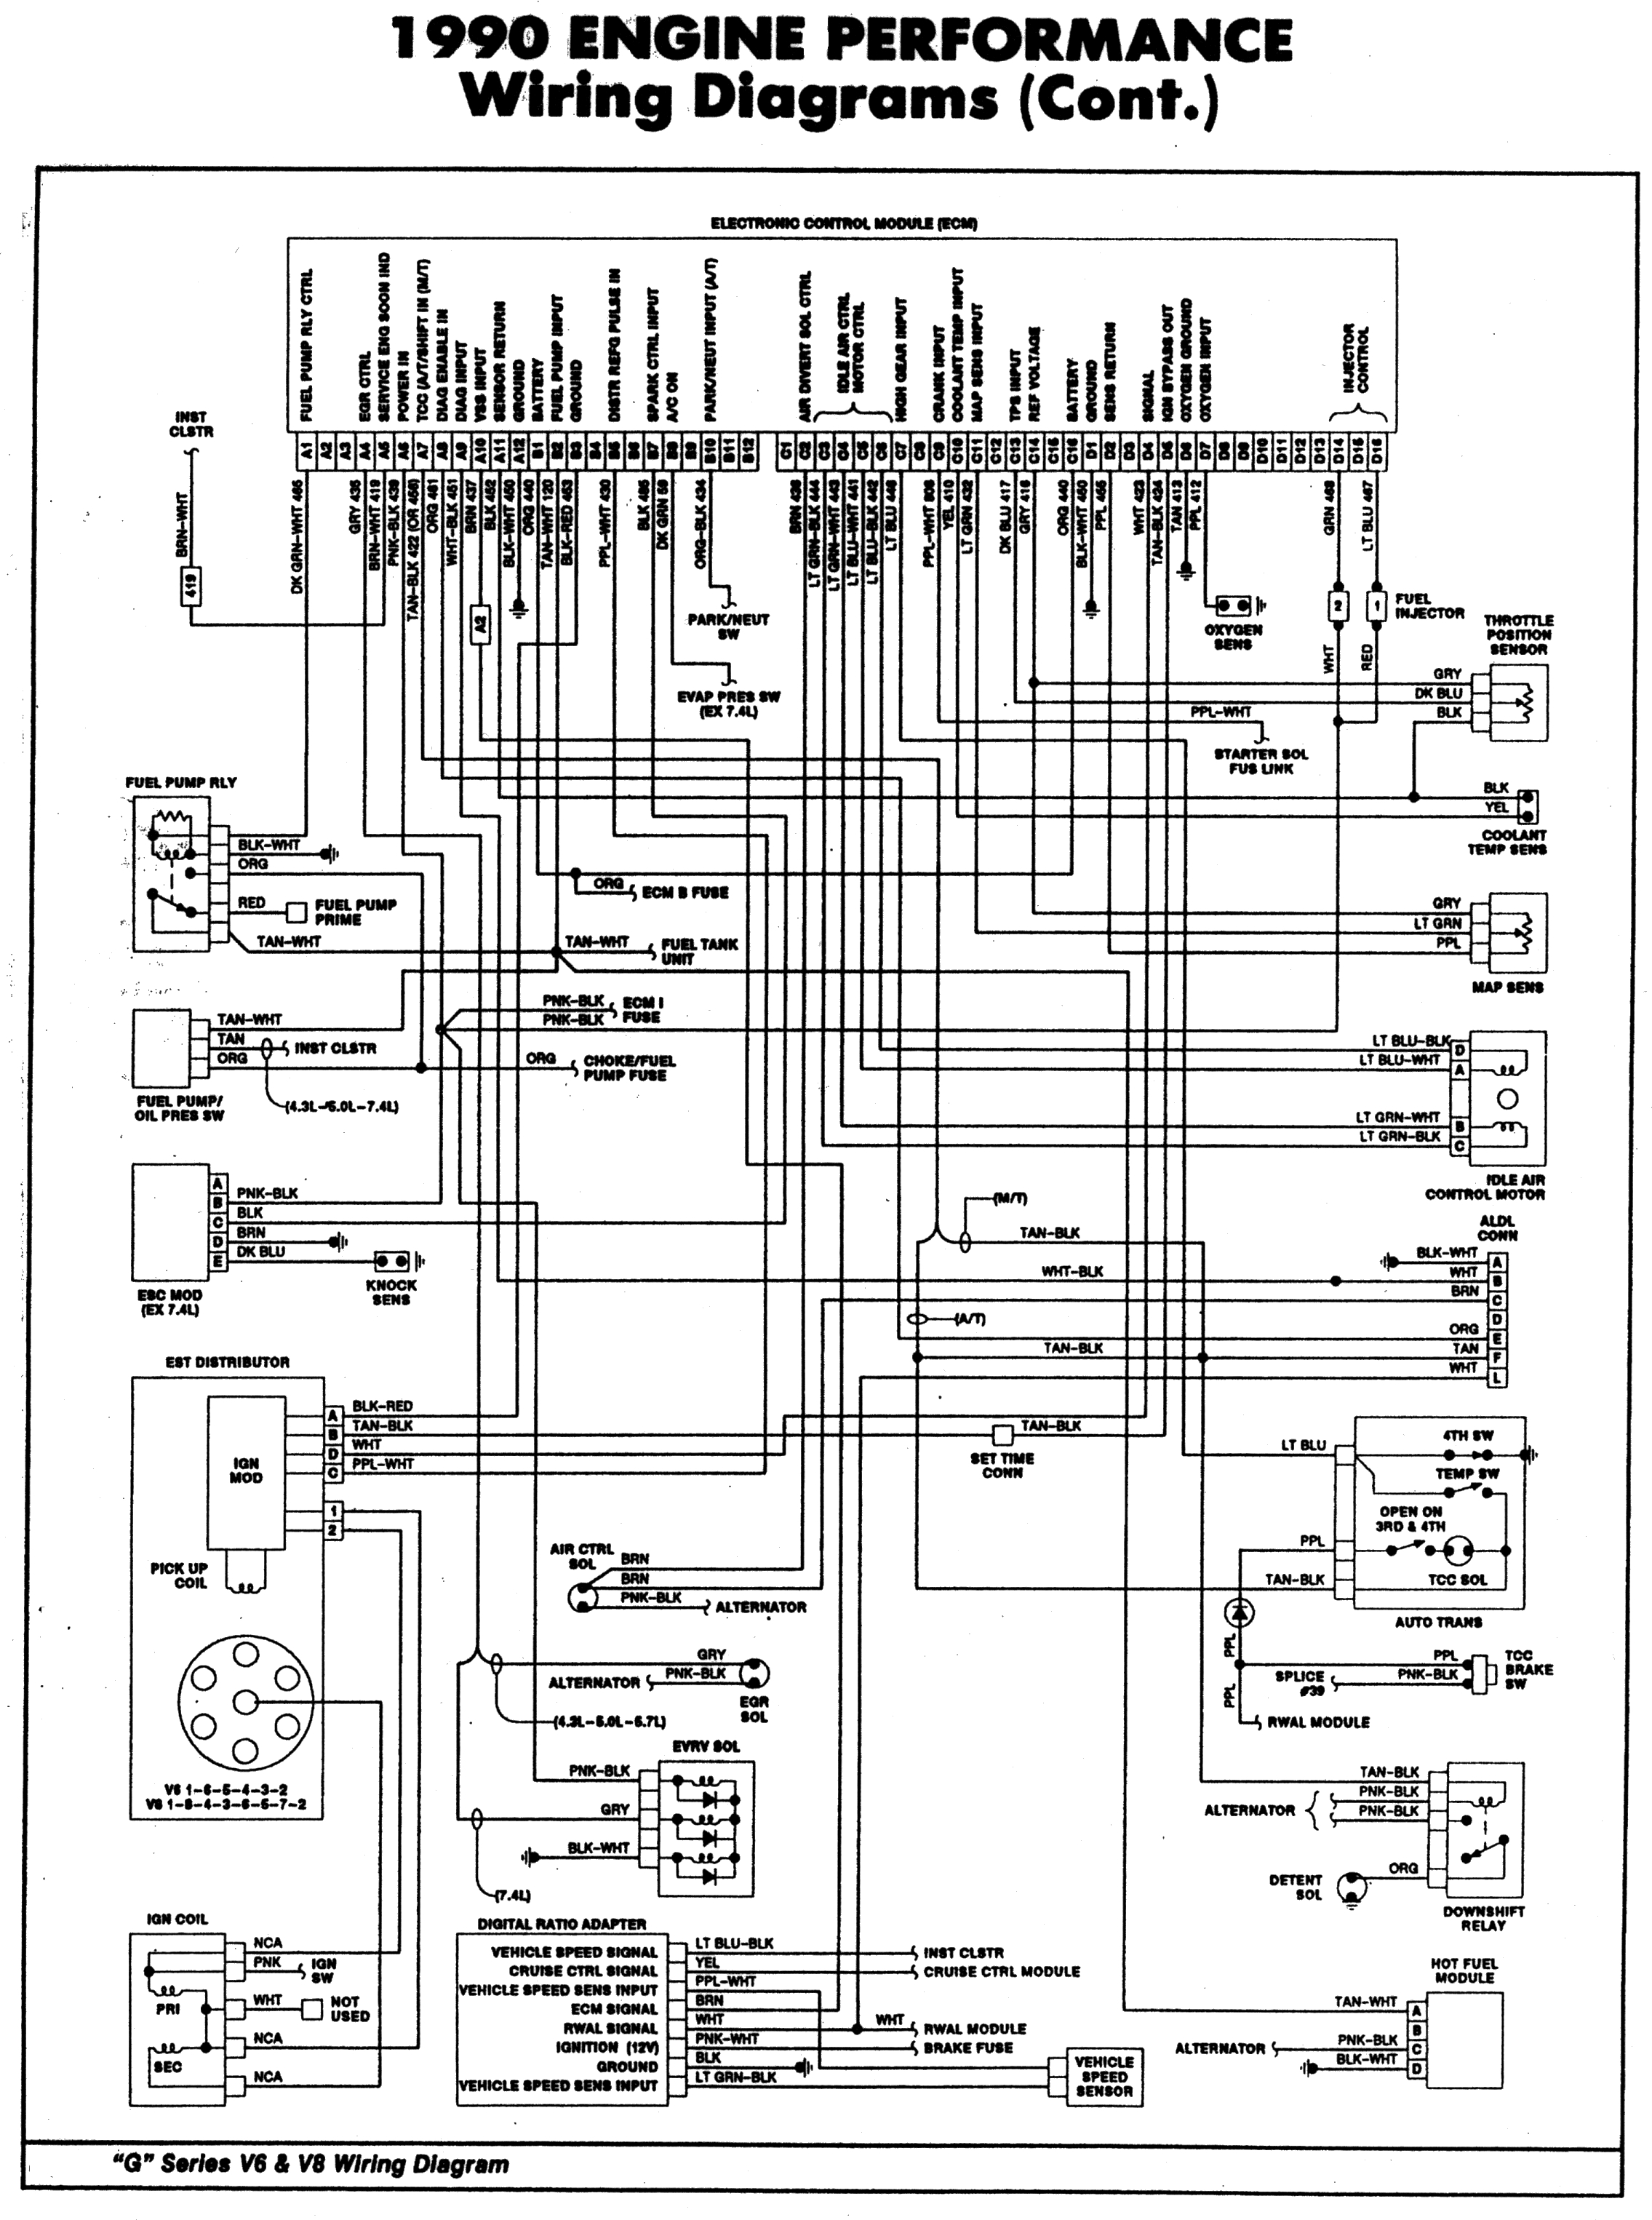 ☑ 2012 Chevy 1500 Fuel Pump Wiring Diagram HD Quality ☑  dendrogram.astrieparticelle.itDiagram Database